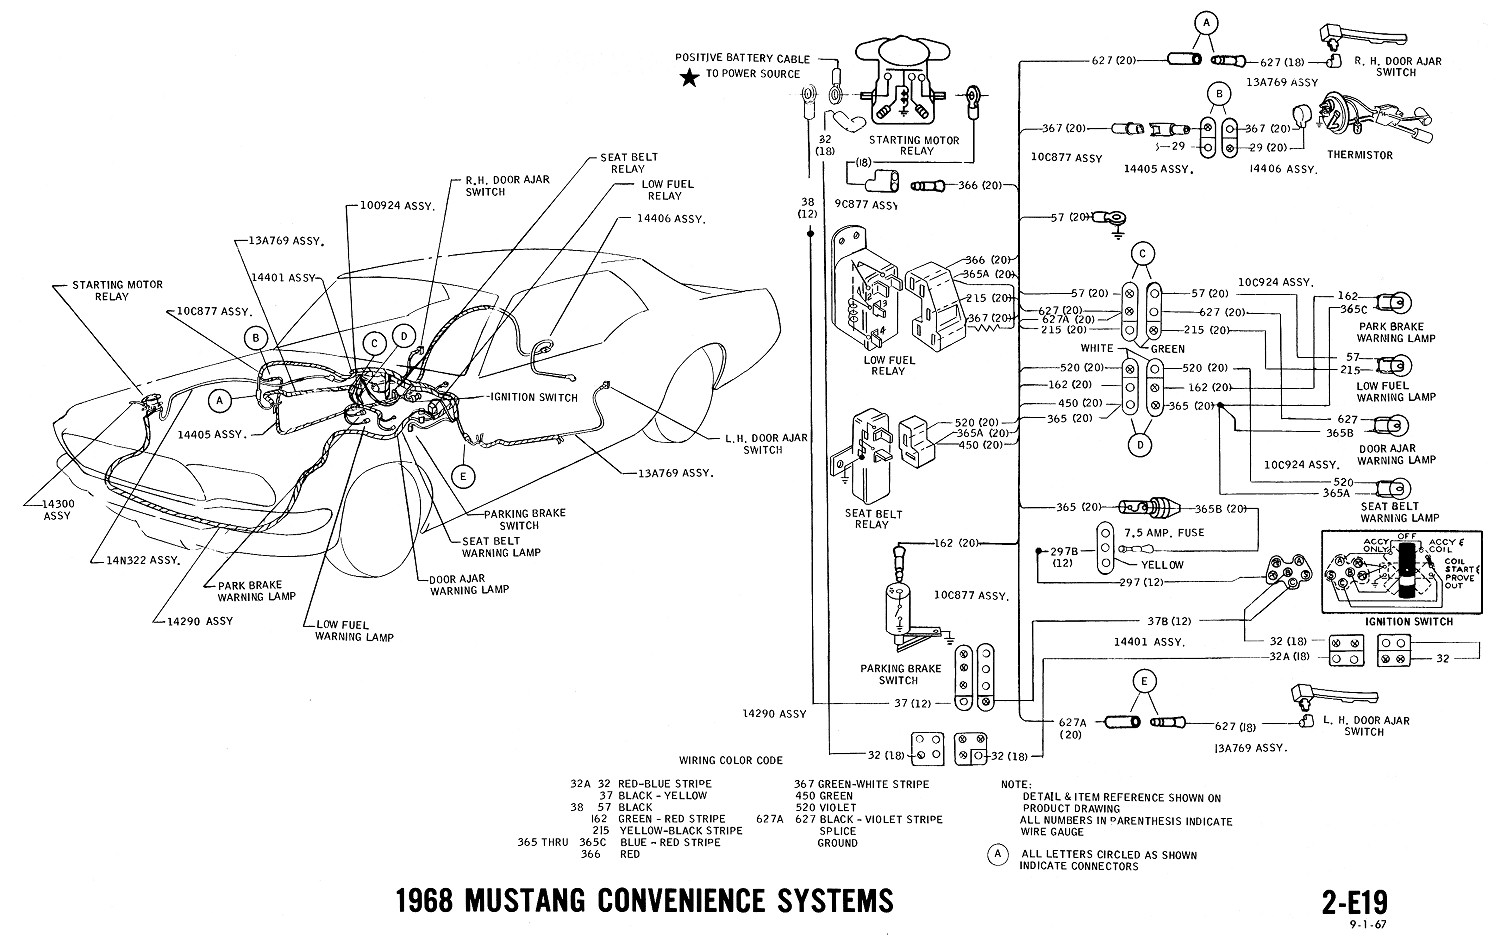 E19 1968 mustang wiring diagrams evolving software ford mustang wiring diagram at arjmand.co